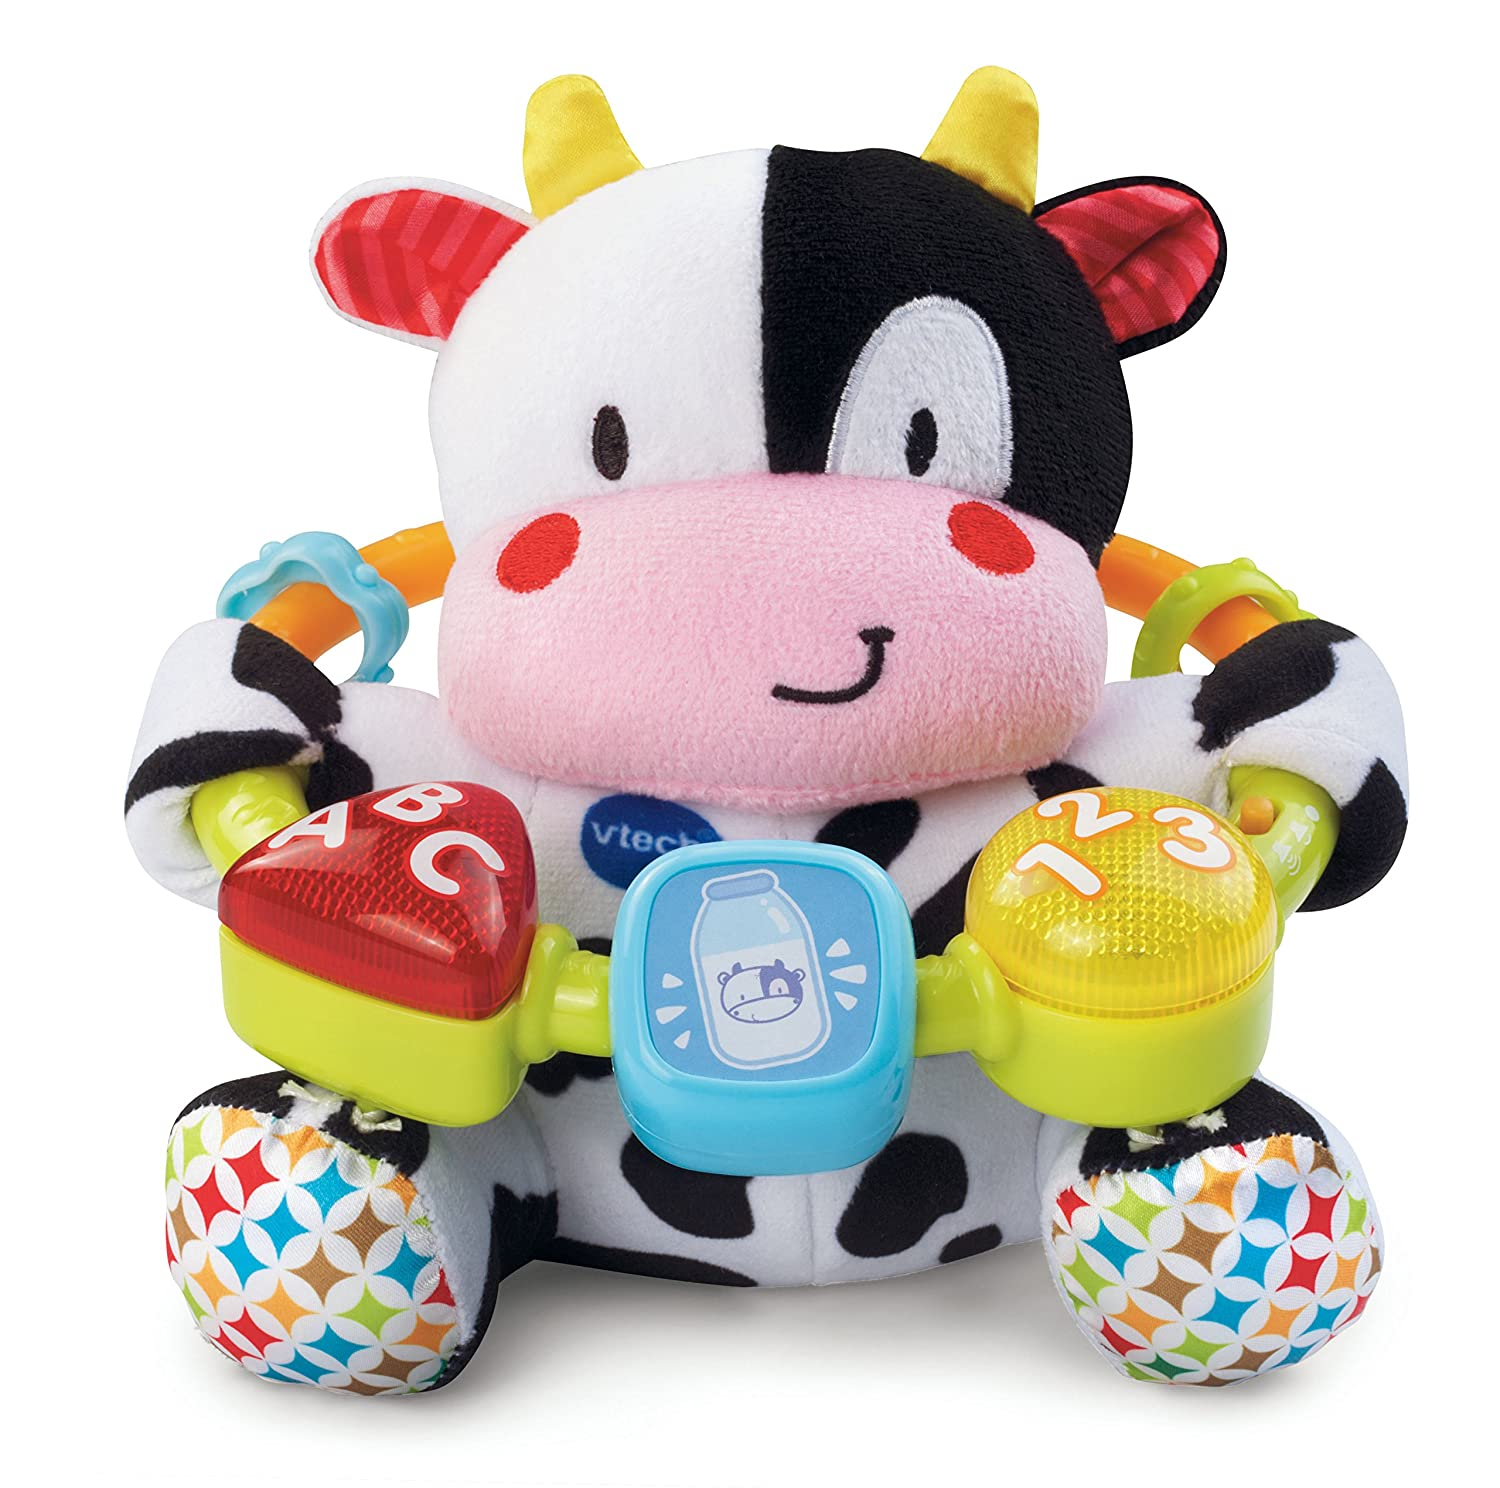 VTech Lil' Critters Moosical Beads Frustration Free Packaging